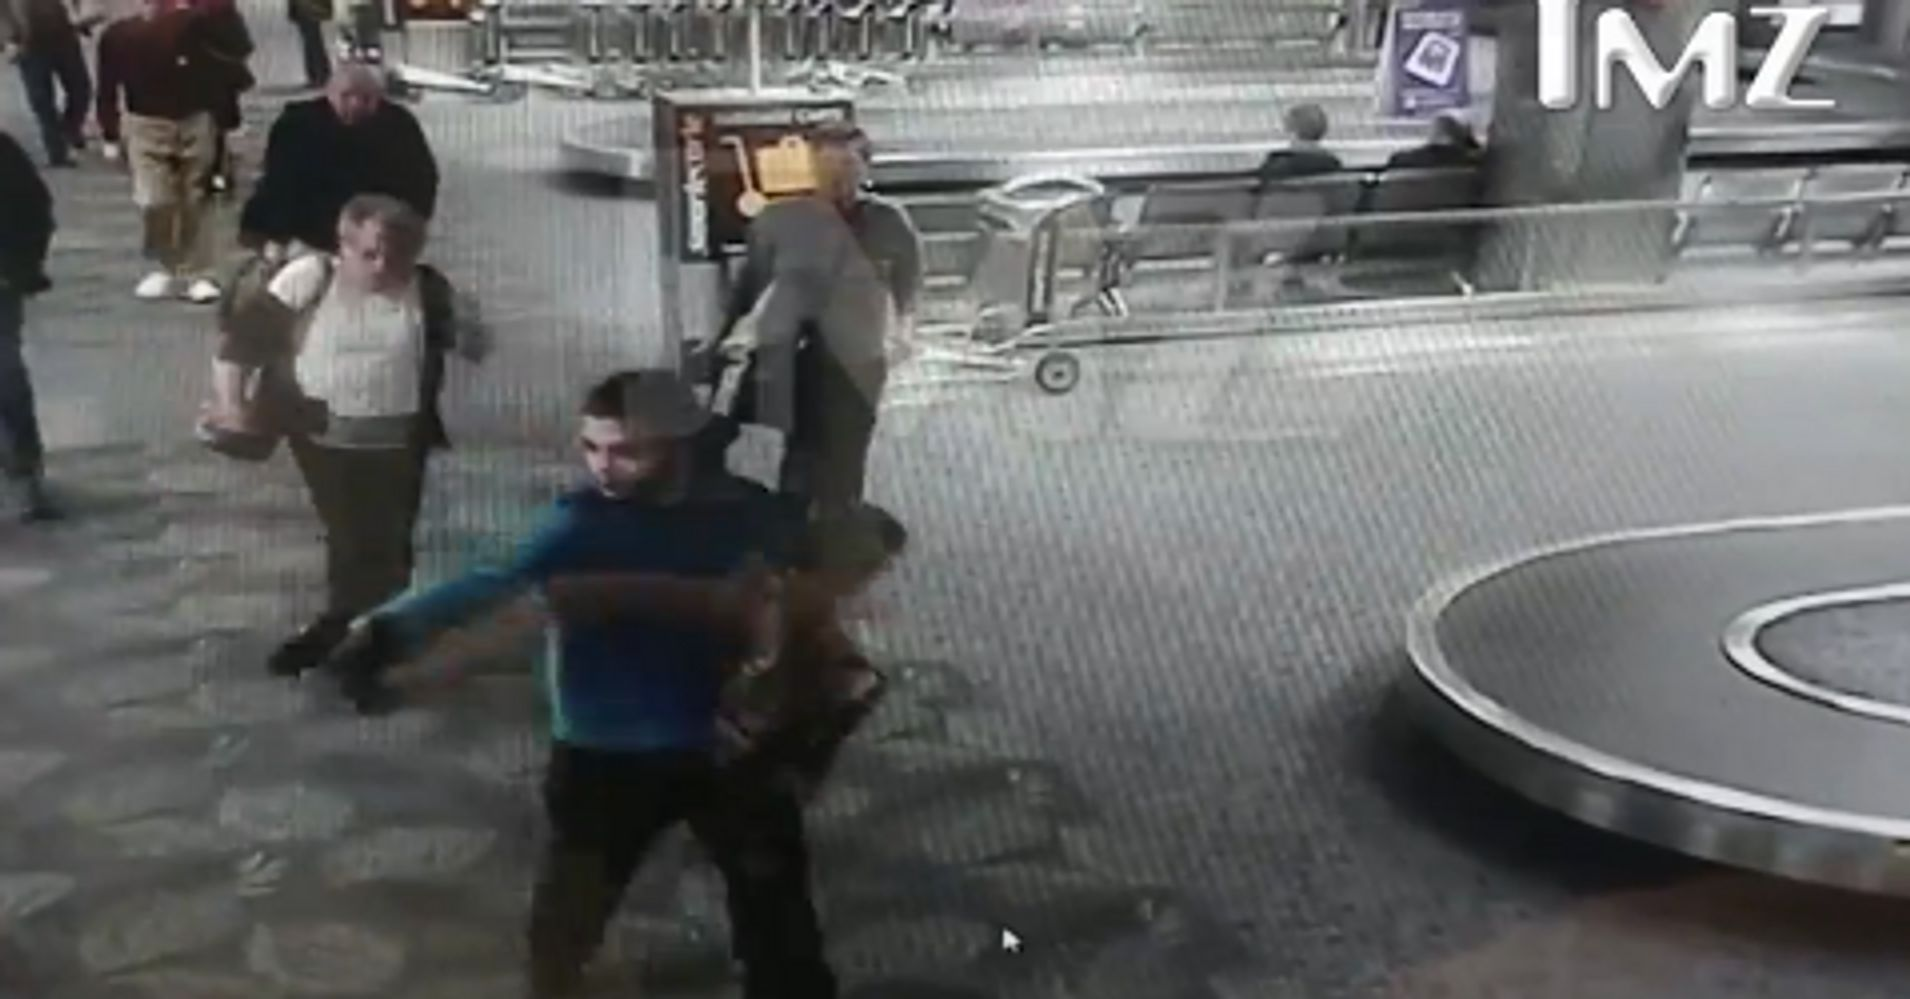 New Zealand Shooting Video Leak Image: Deputy Suspended Over Leaked Airport Shooting Video